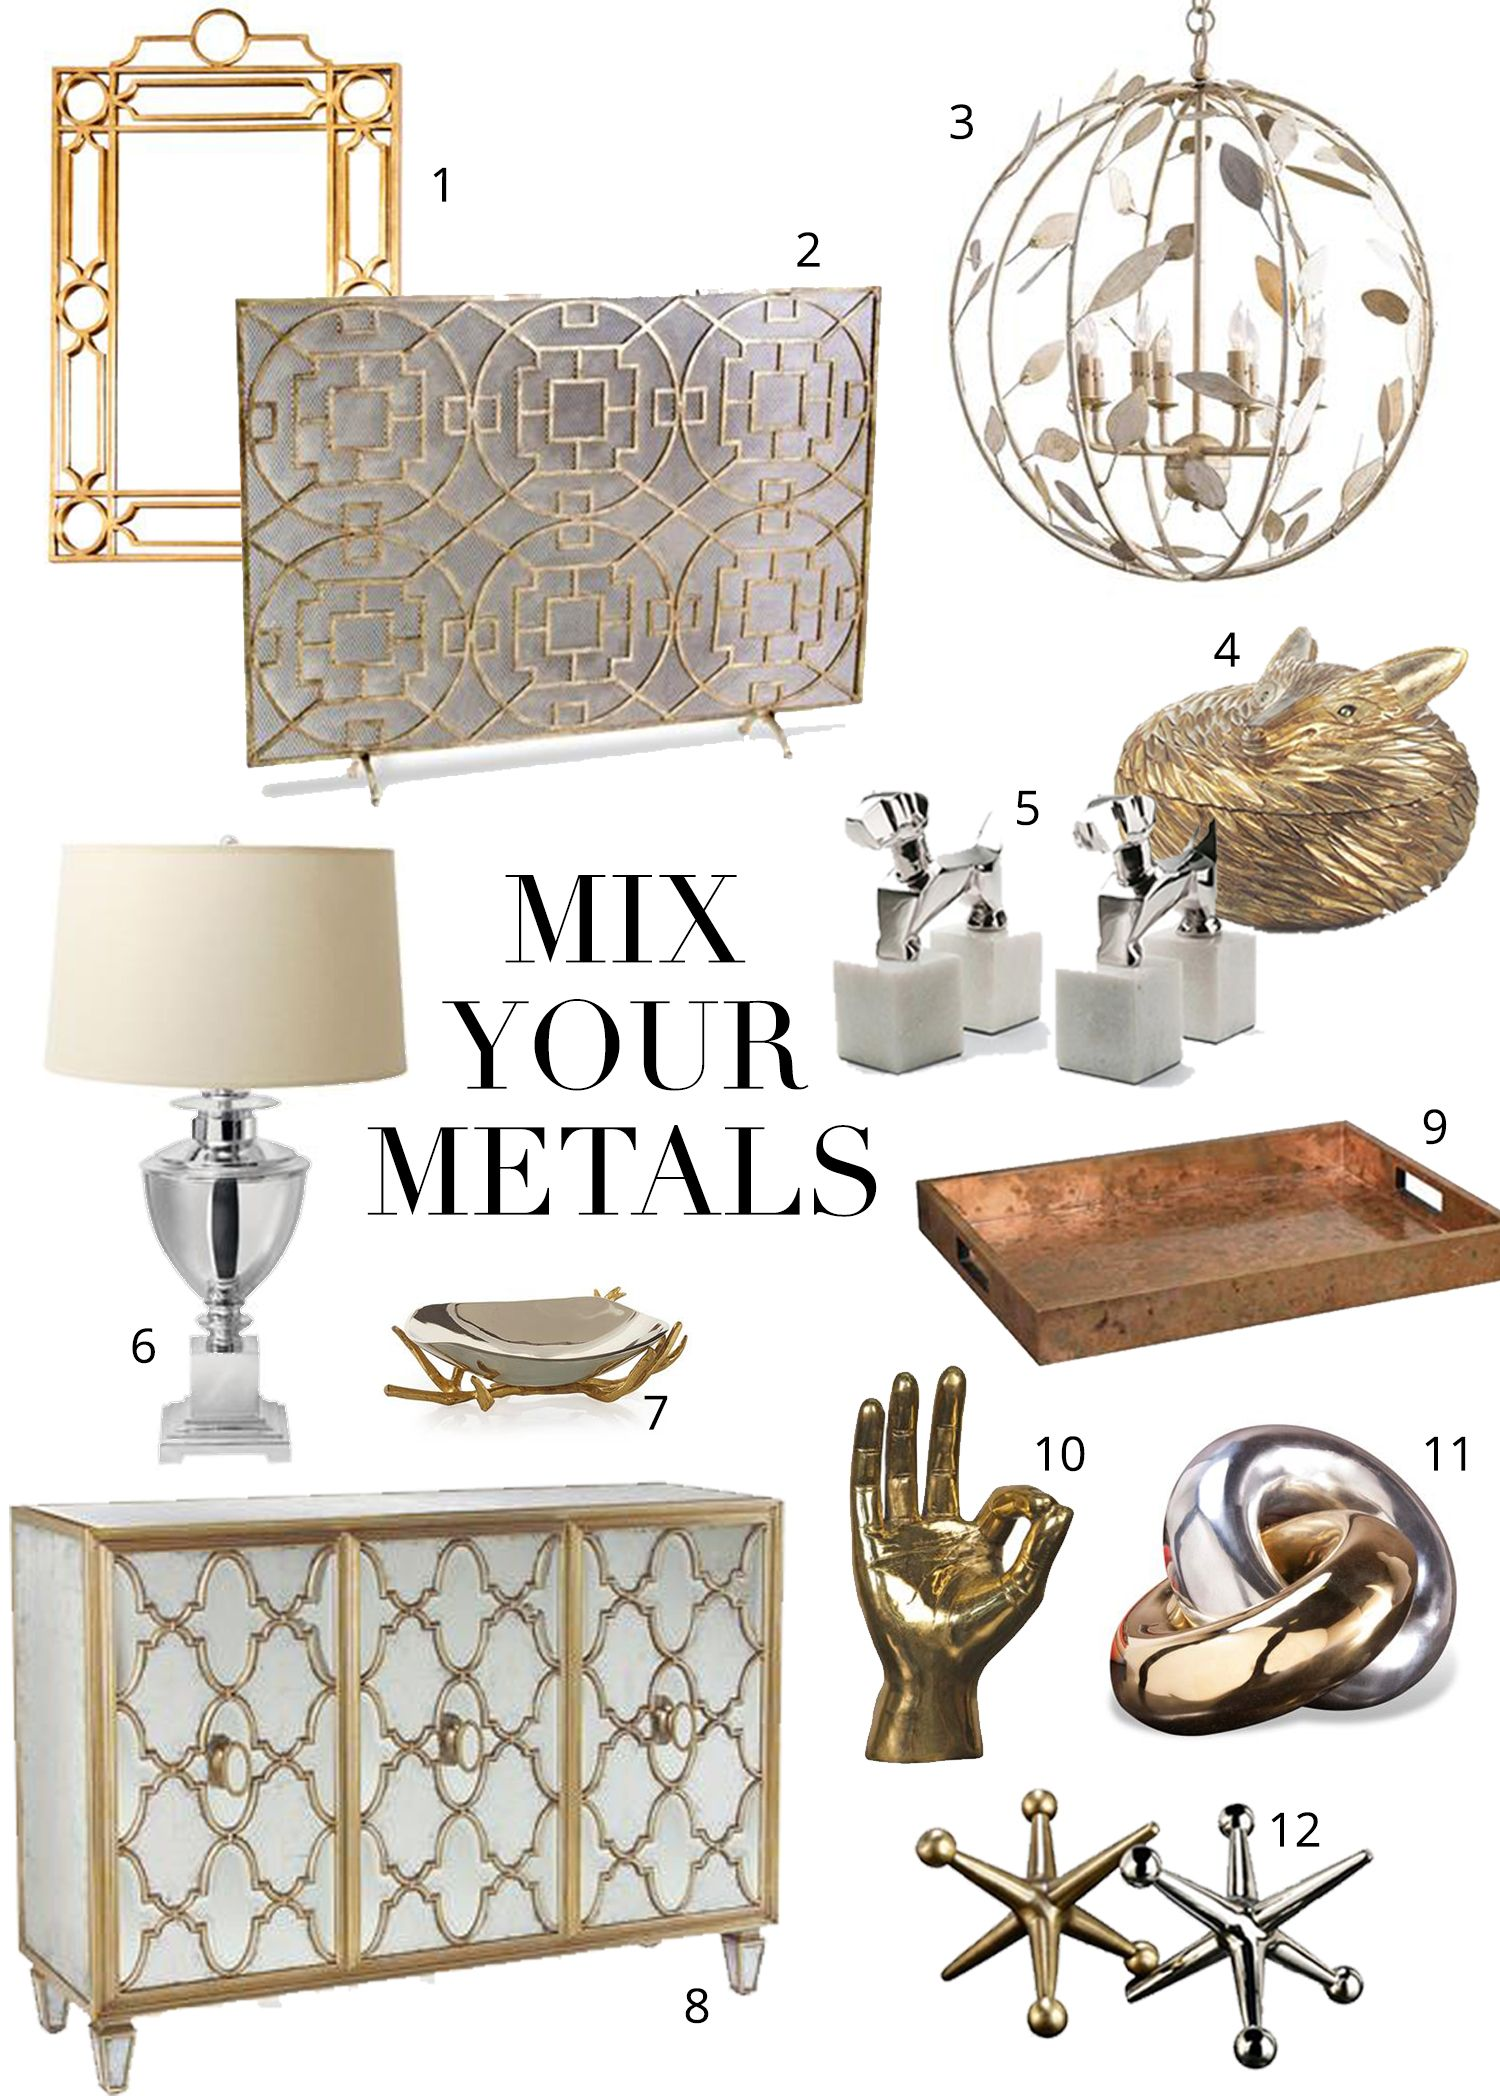 Mixing Metals The Do S And Don Ts Home Amp Design Home